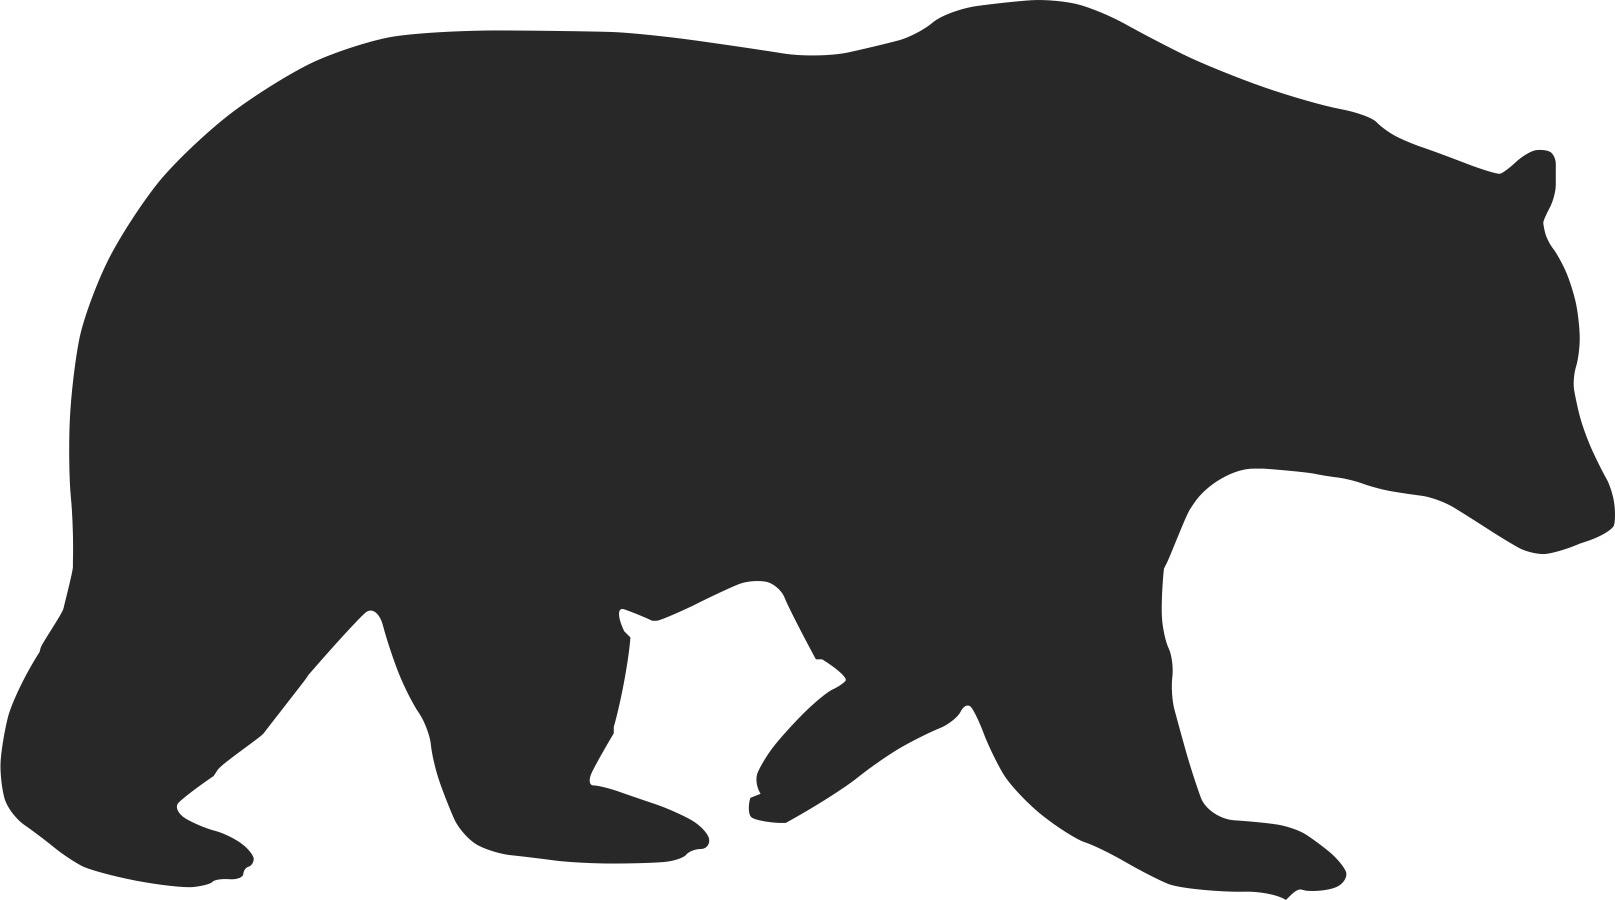 Bear clipart silhouette. Sloth at getdrawings com